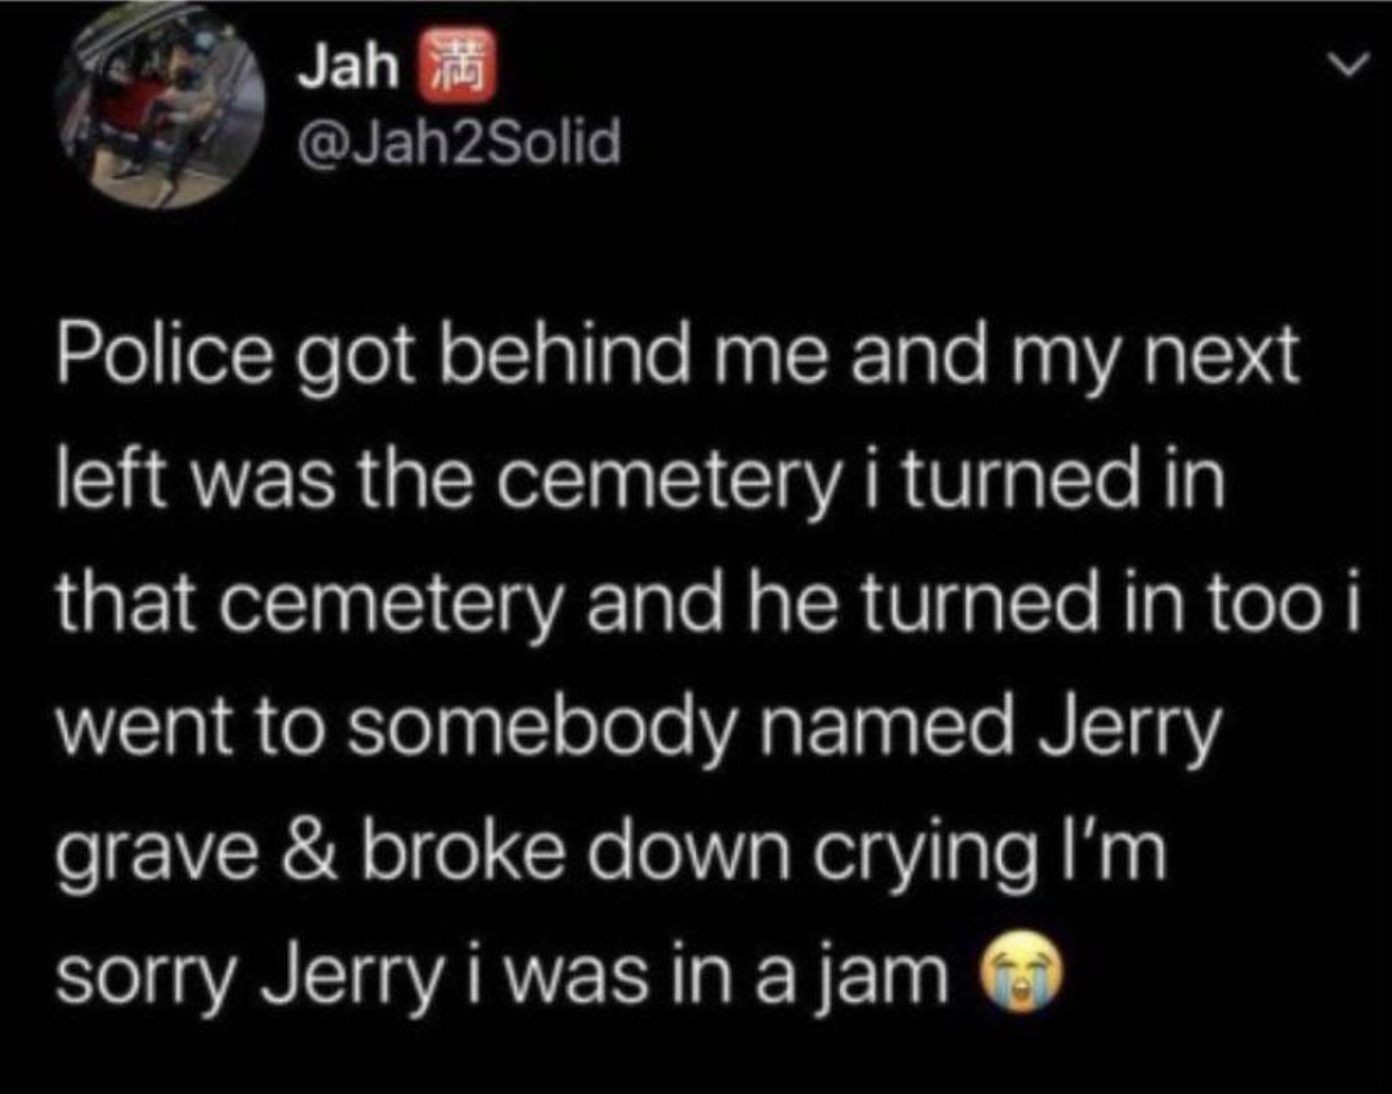 someone who went to the cemetary so they could not get pulled over